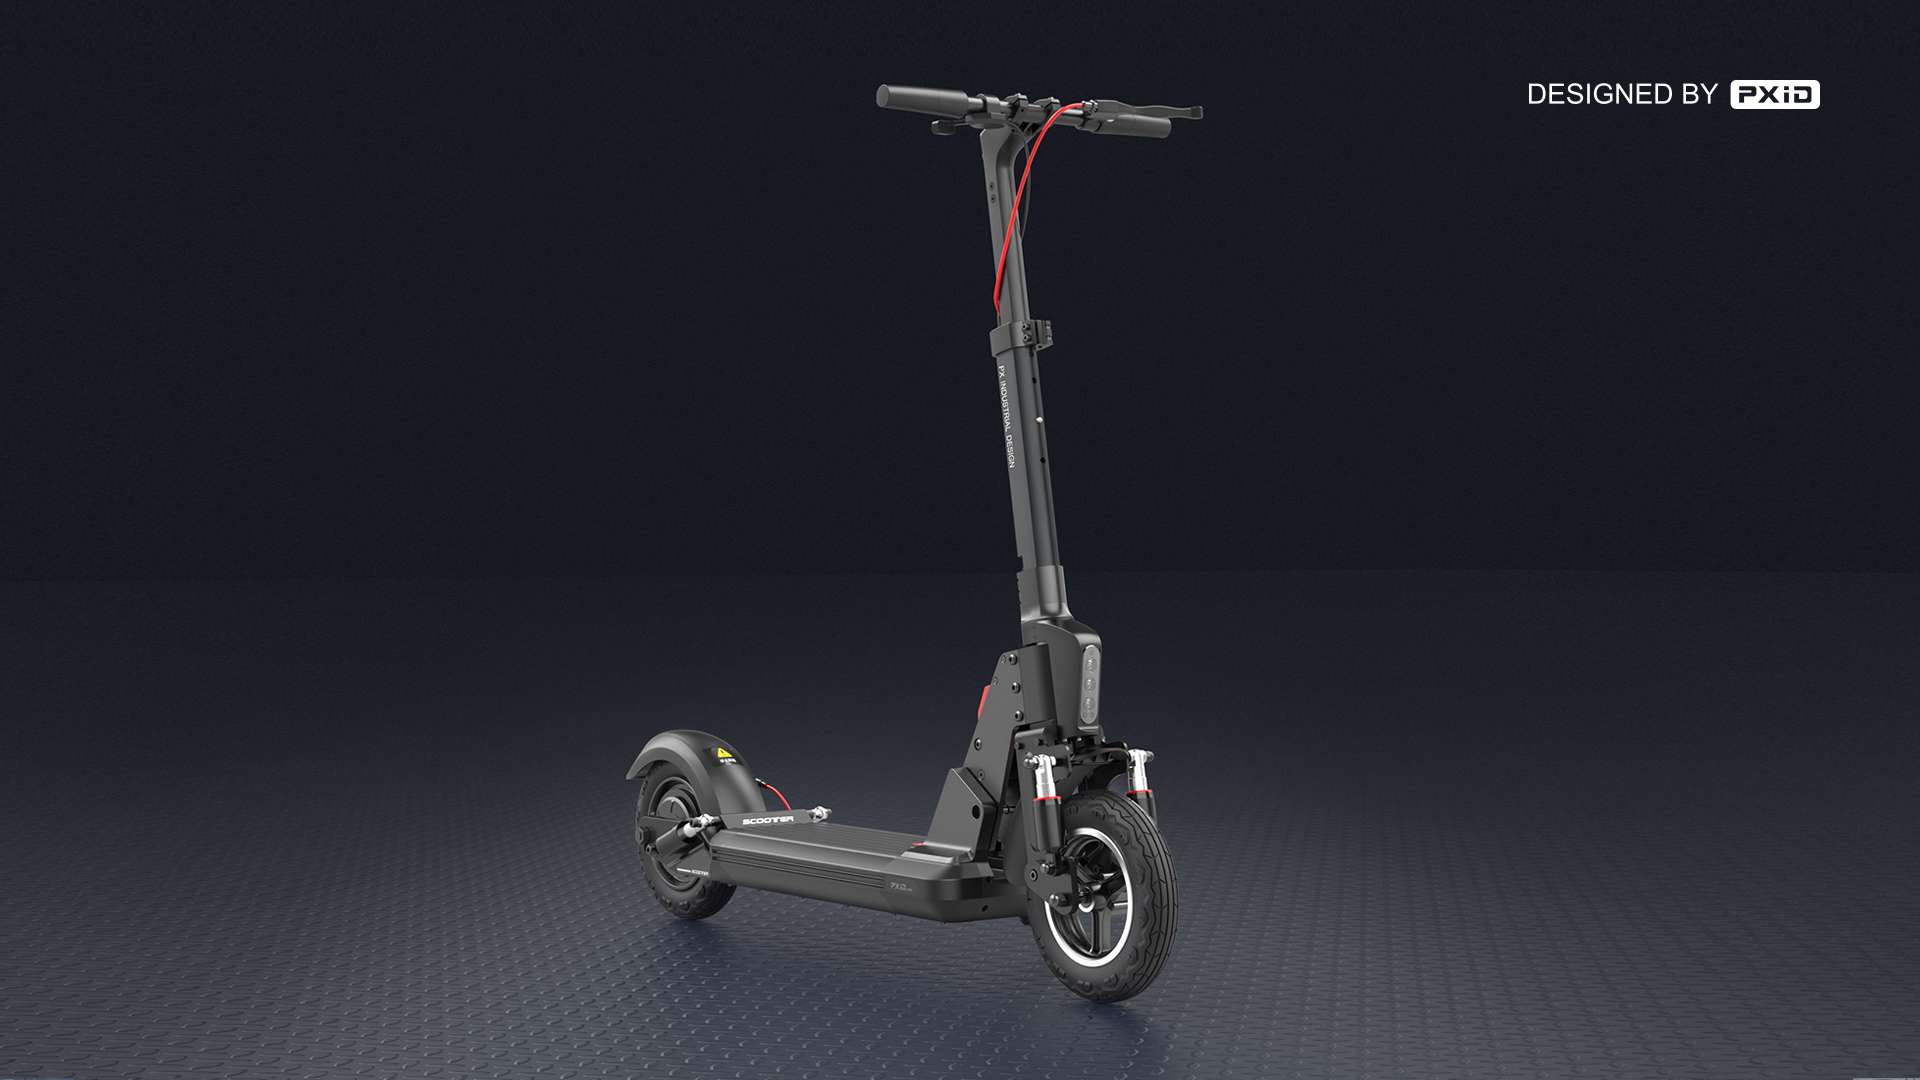 The c1 powerful power scooter takes you out of C, and travels cool!